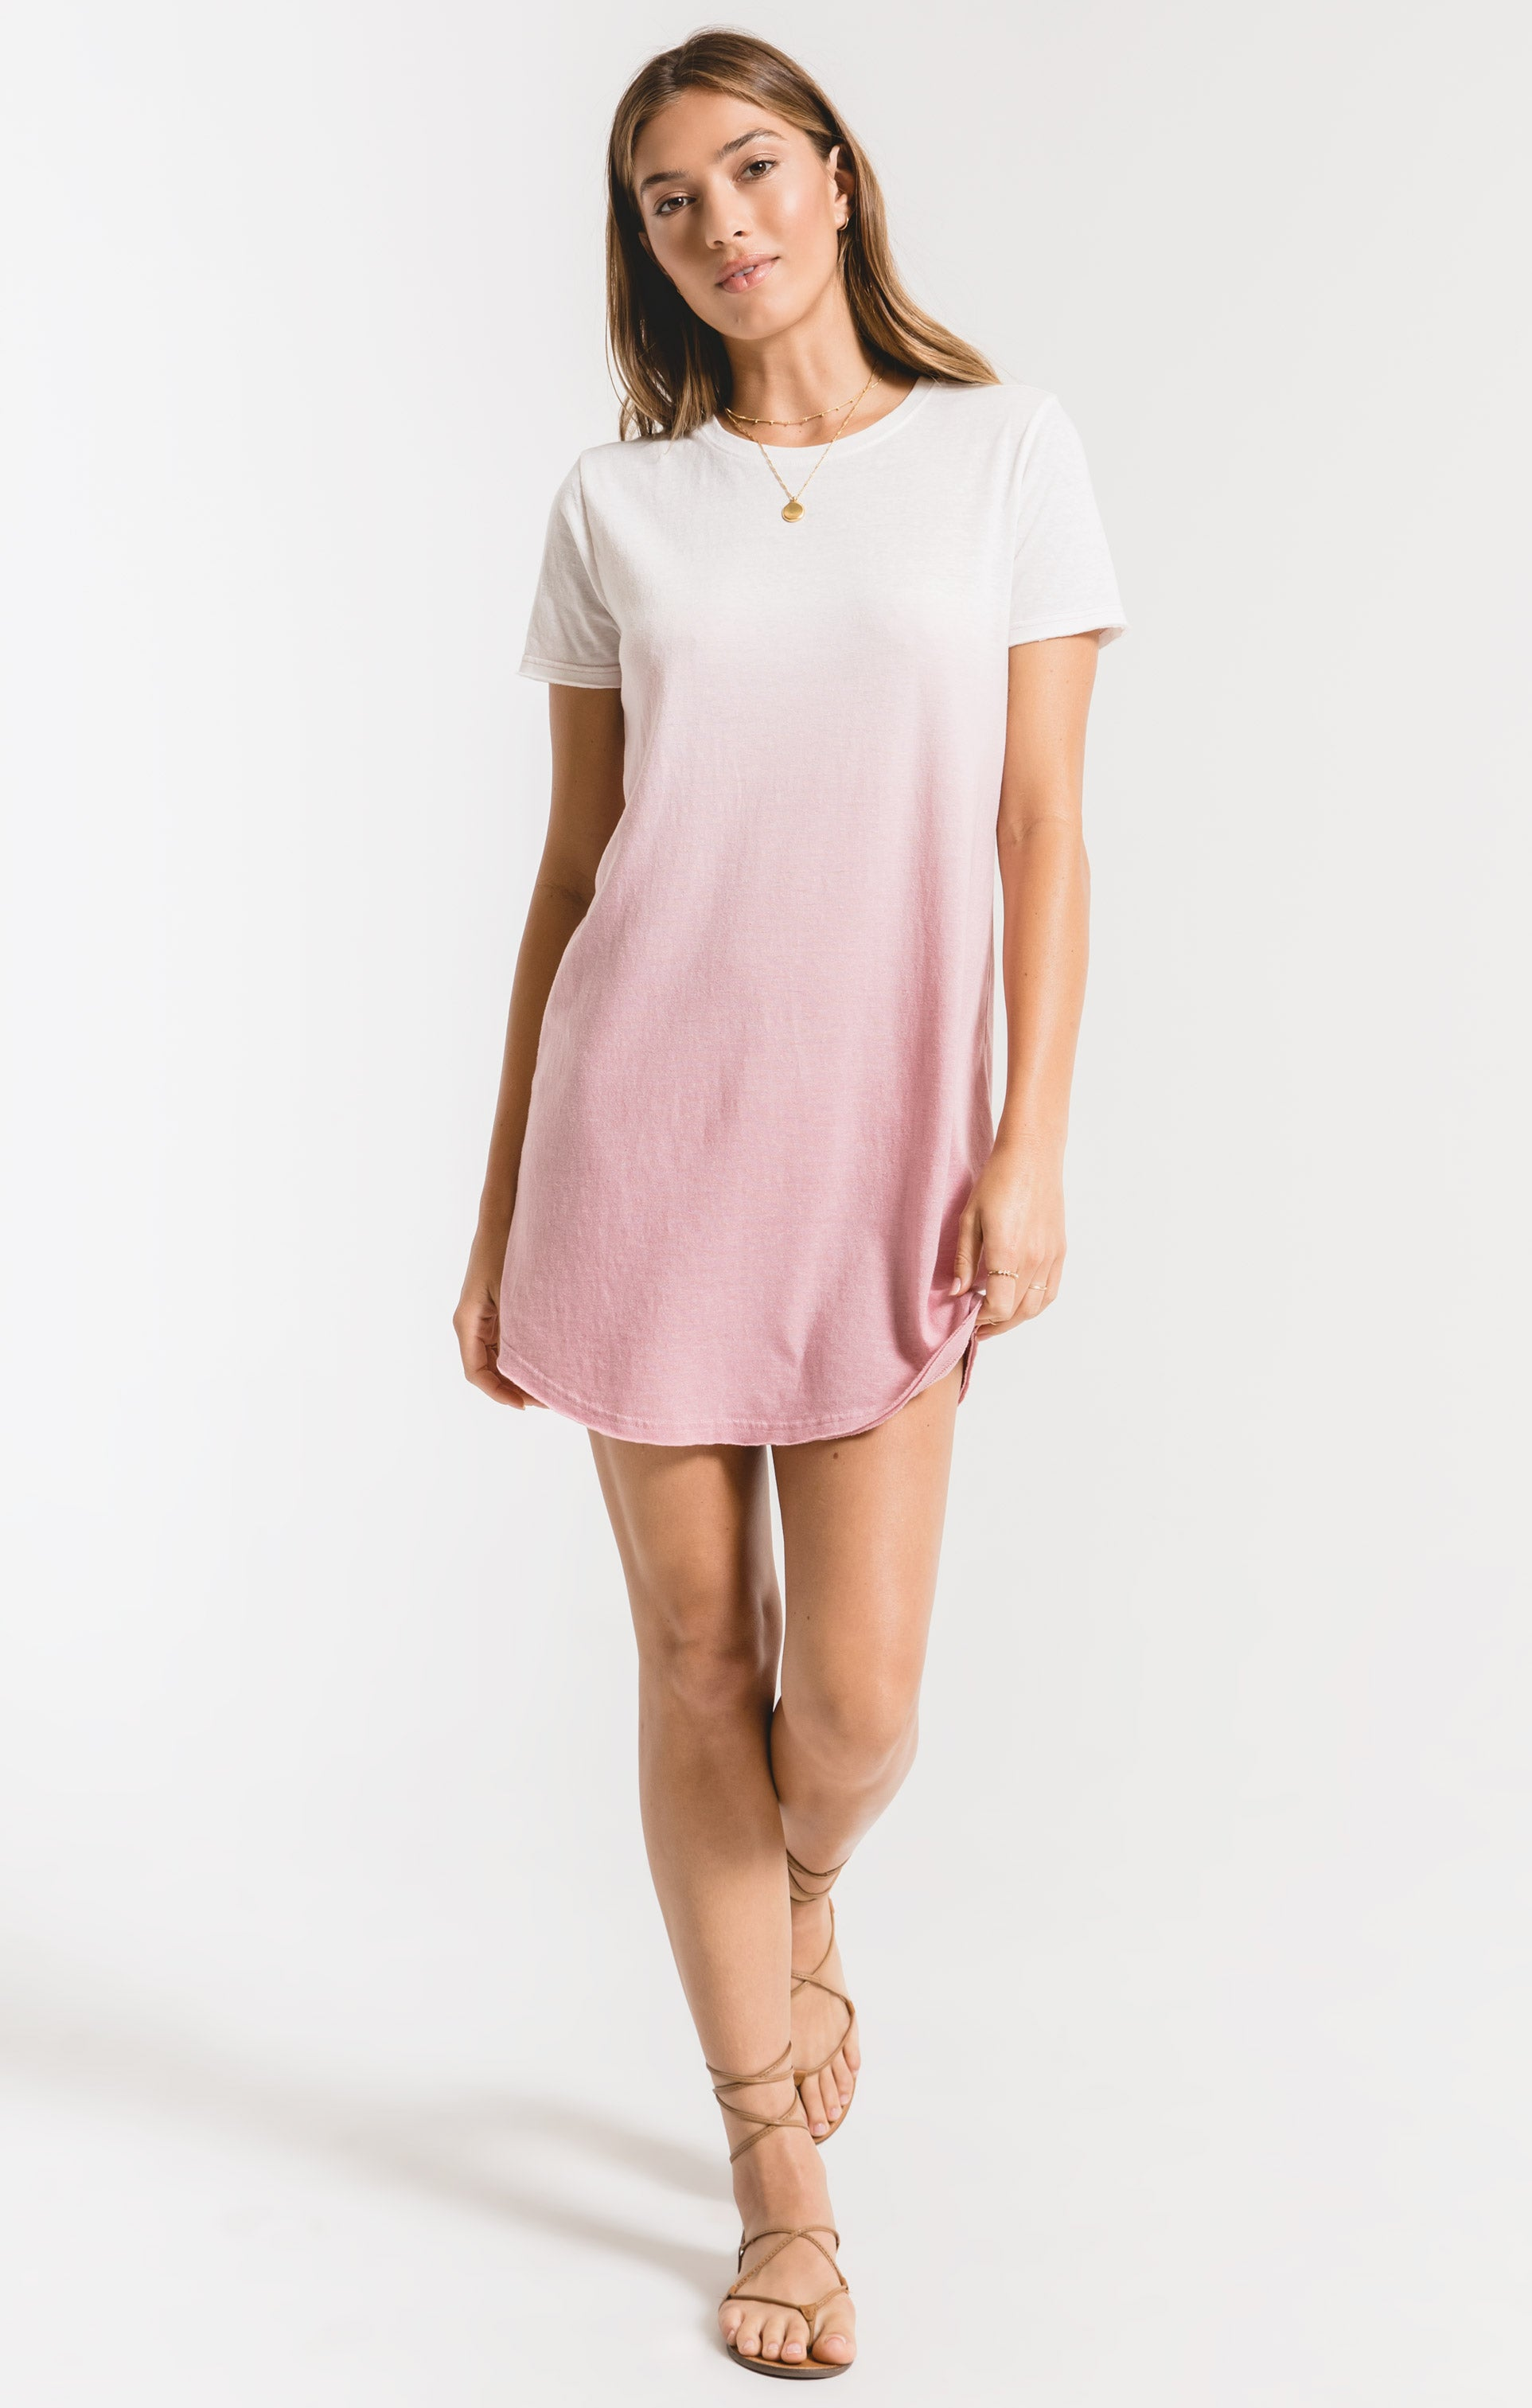 Dresses Ombre Dip Dye Dress Zephyr Pink/White